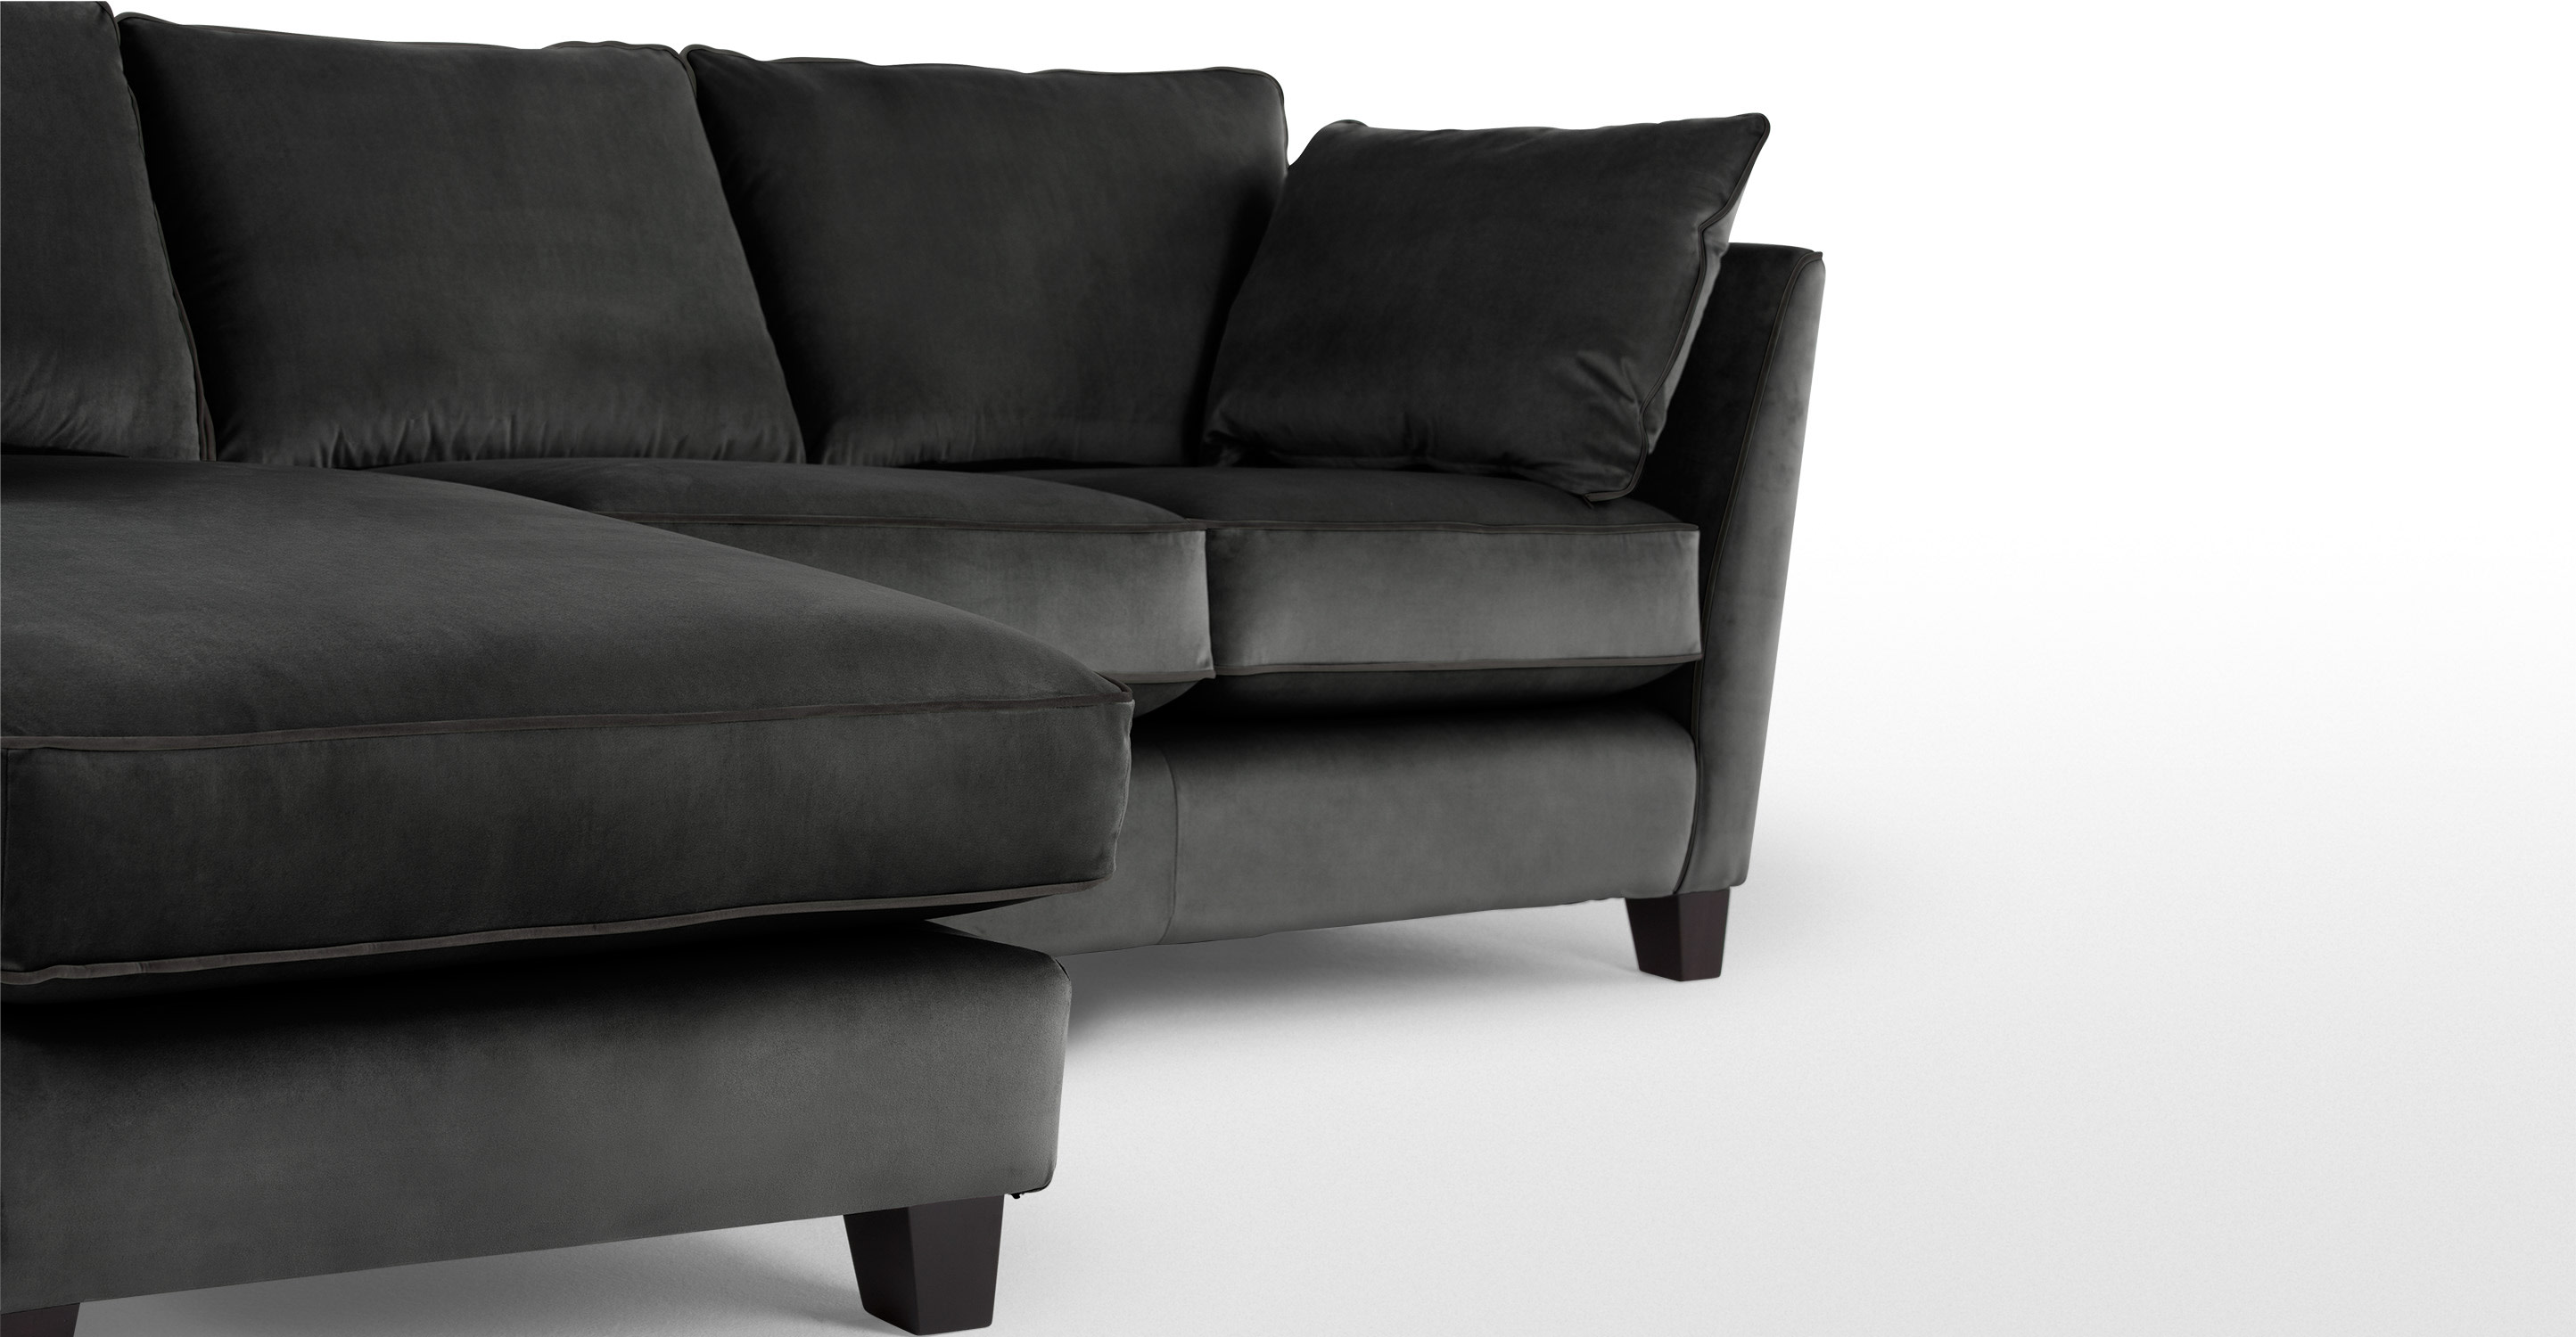 wolseley large corner sofa smoke grey velvet. Black Bedroom Furniture Sets. Home Design Ideas